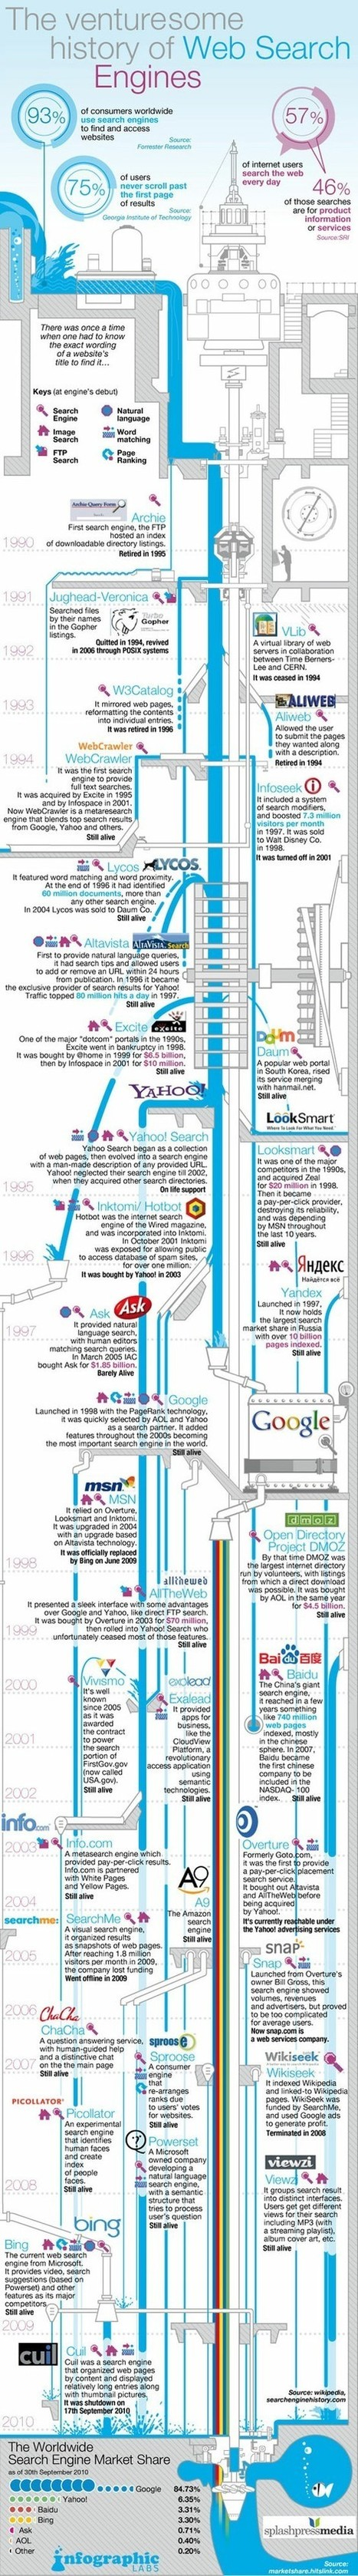 Search Engine Facts: Full Historical Timeline   Design, Photography & Social Media   Scoop.it